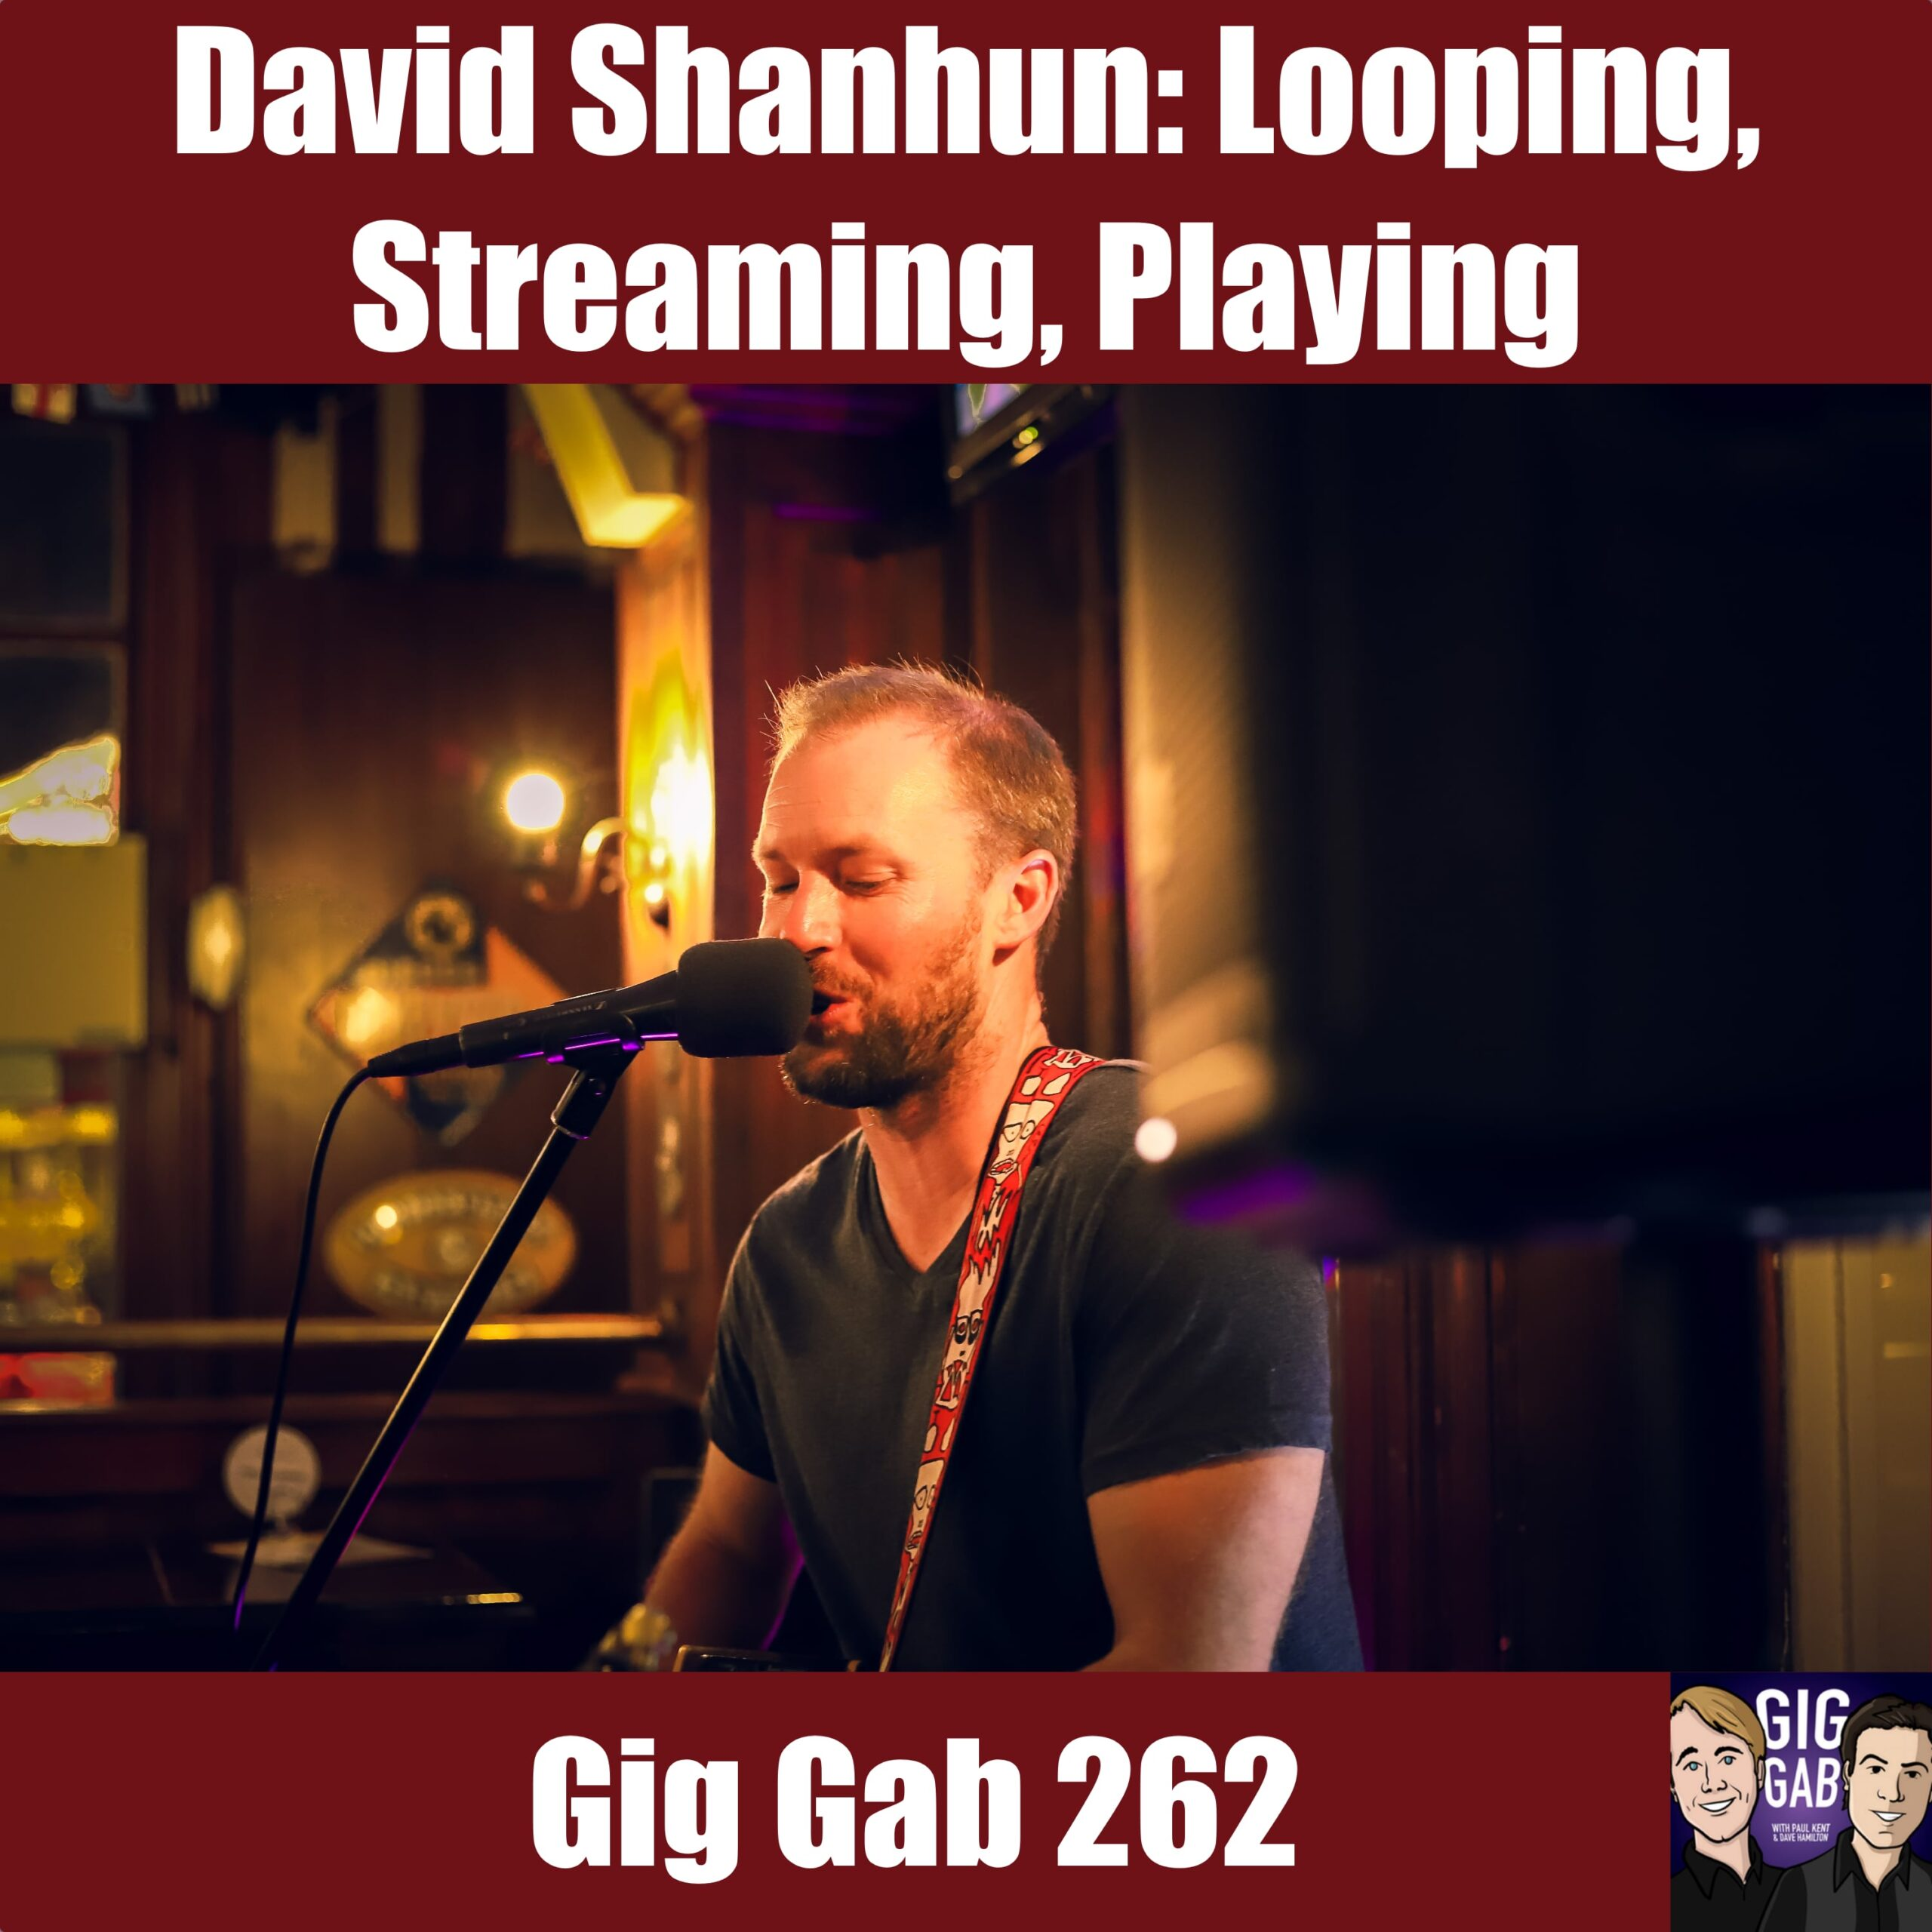 Guitar looping pro David Shanhun at the mic, Gig Gab Podcast 262 Episode Image